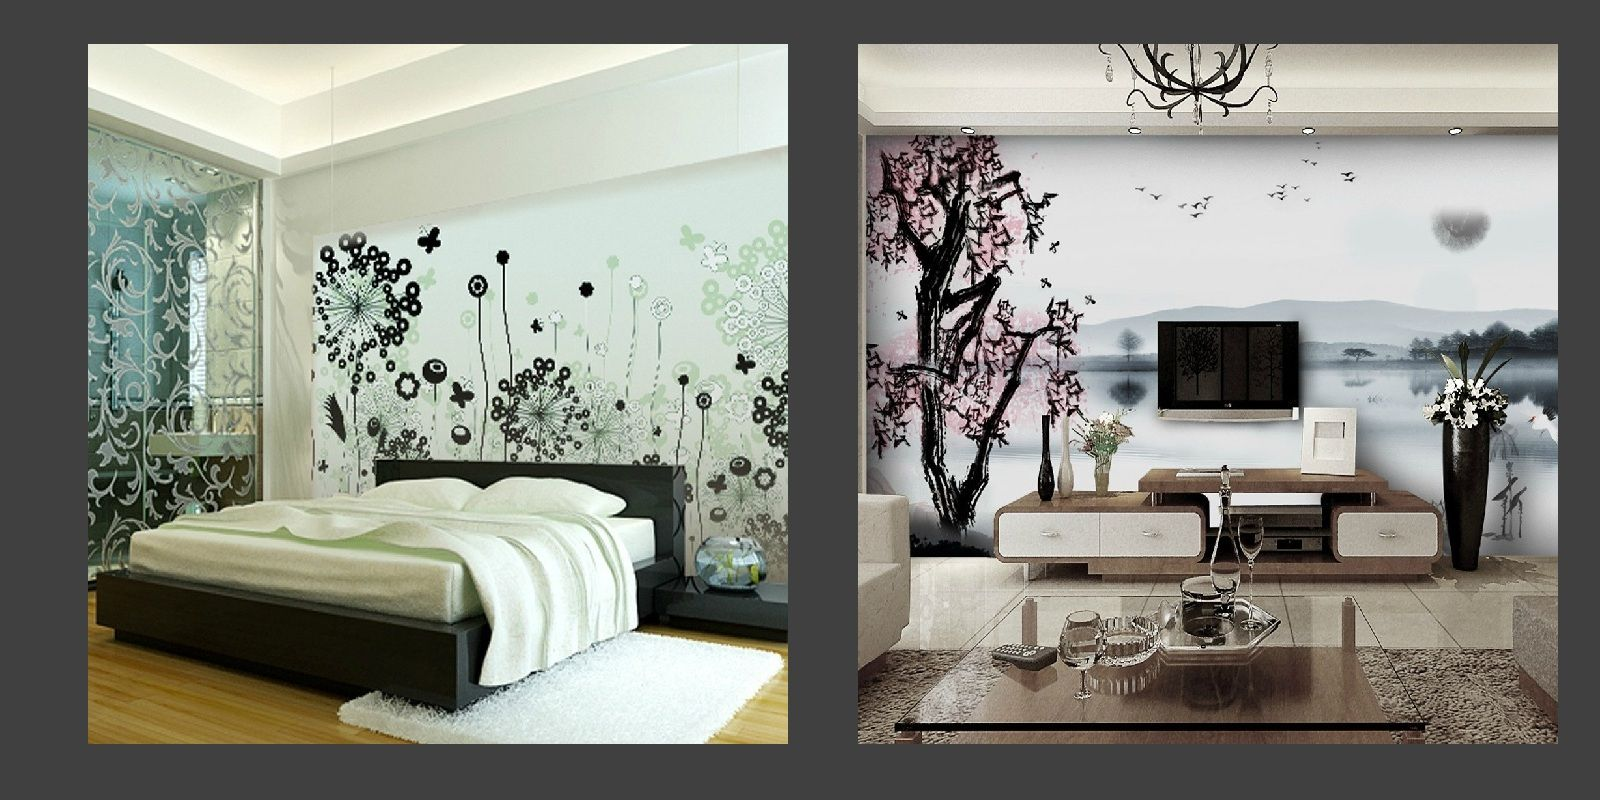 Home wallpaper design patterns home wallpaper designs for Wallpaper decoration for home